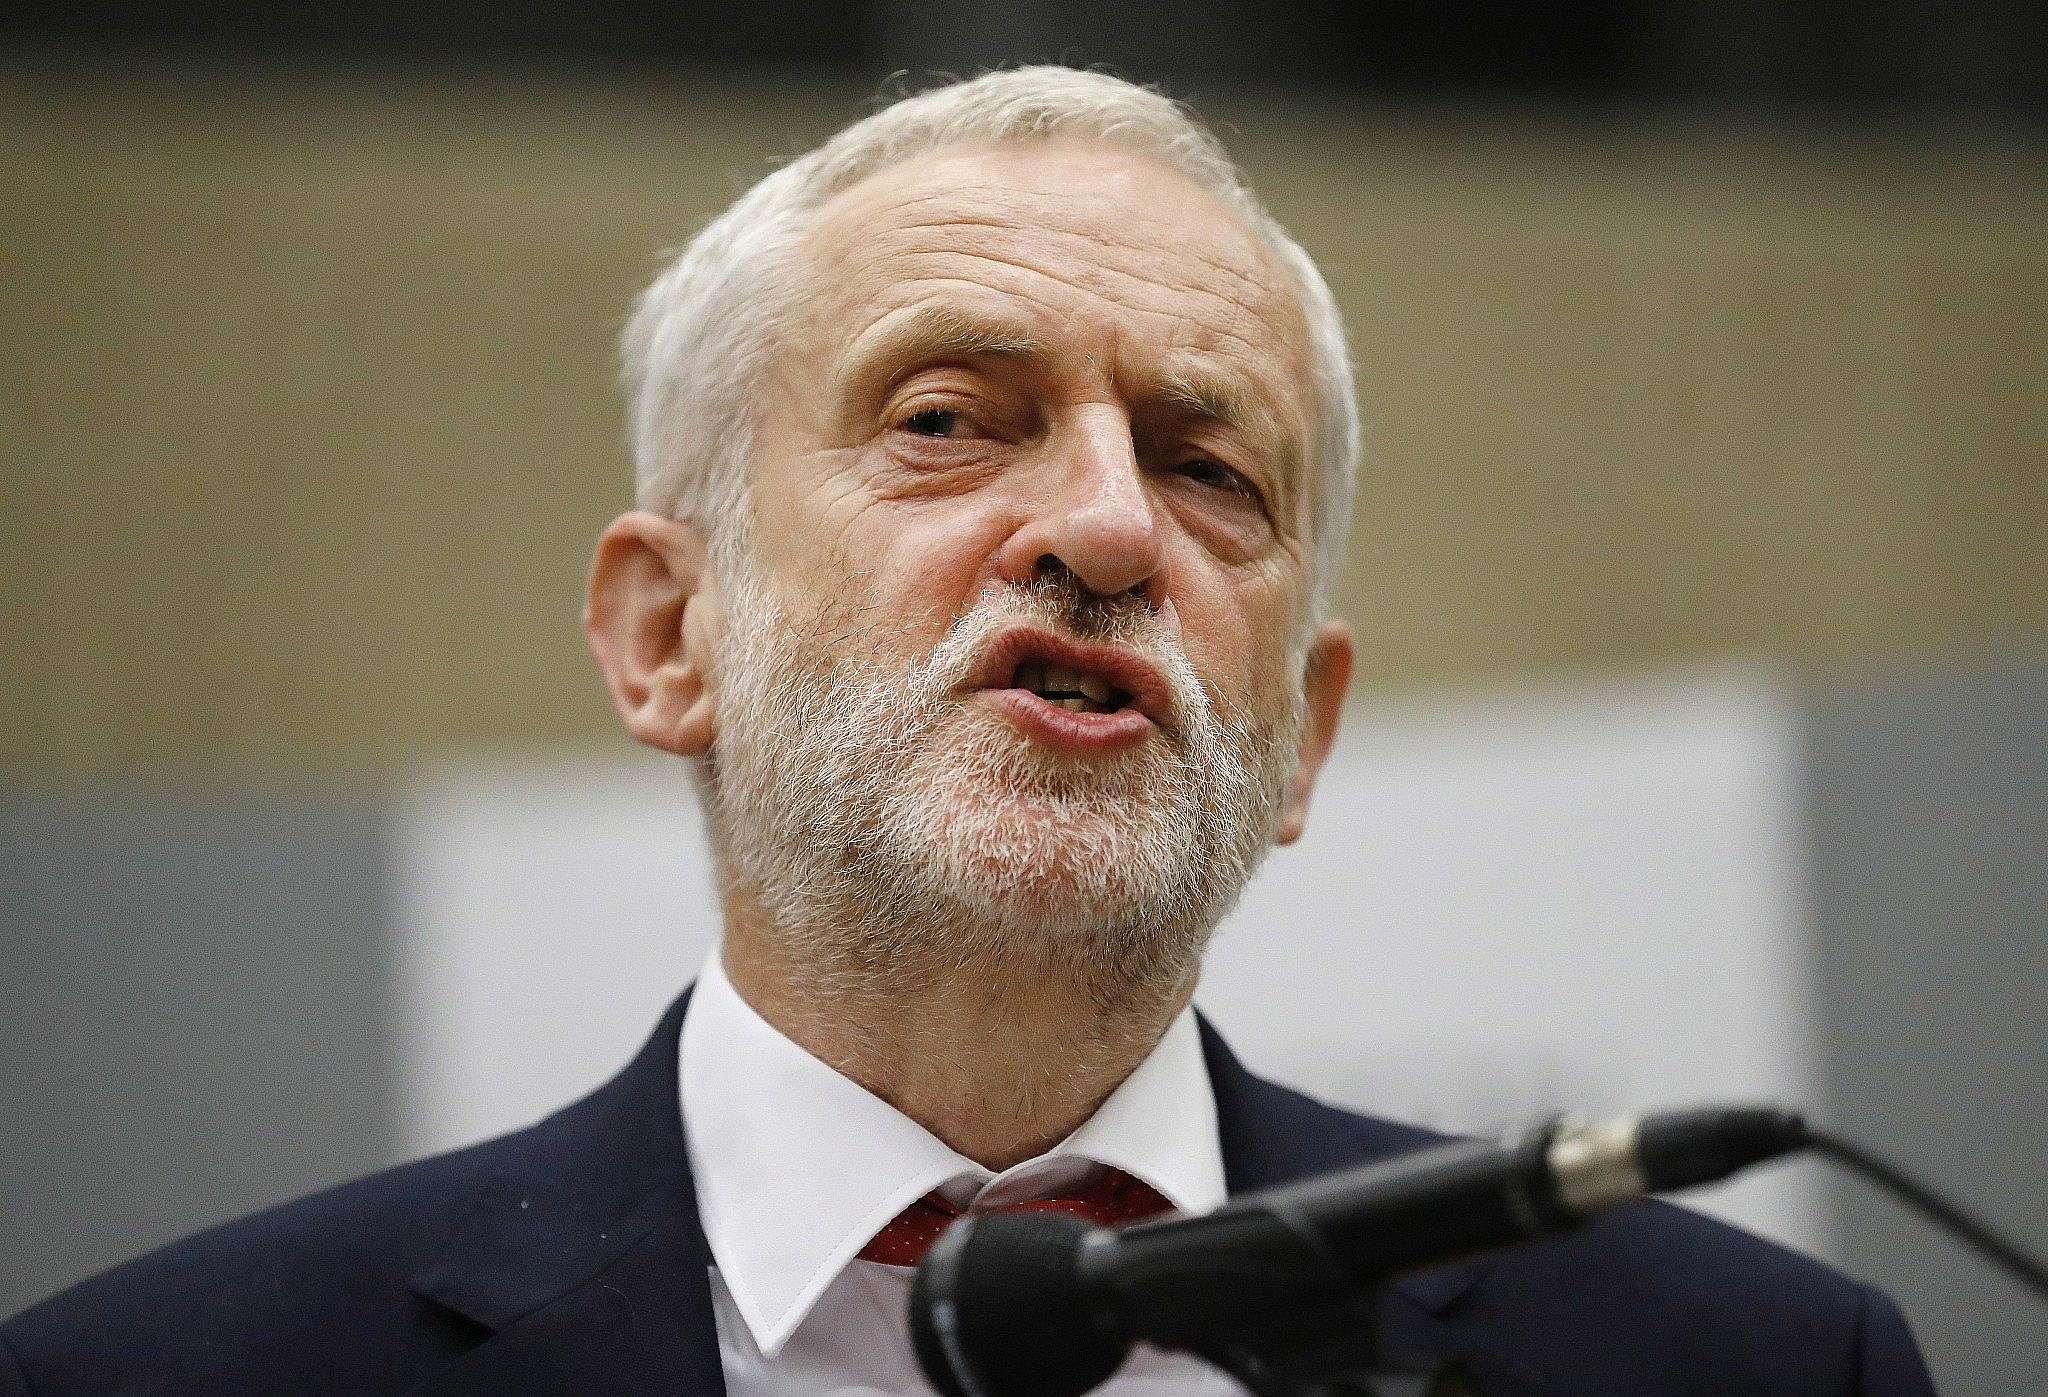 Jeremy Corbyn Called 'Irresponsible' For Meeting Radical Jewish Group Amid Anti-Semitism Row